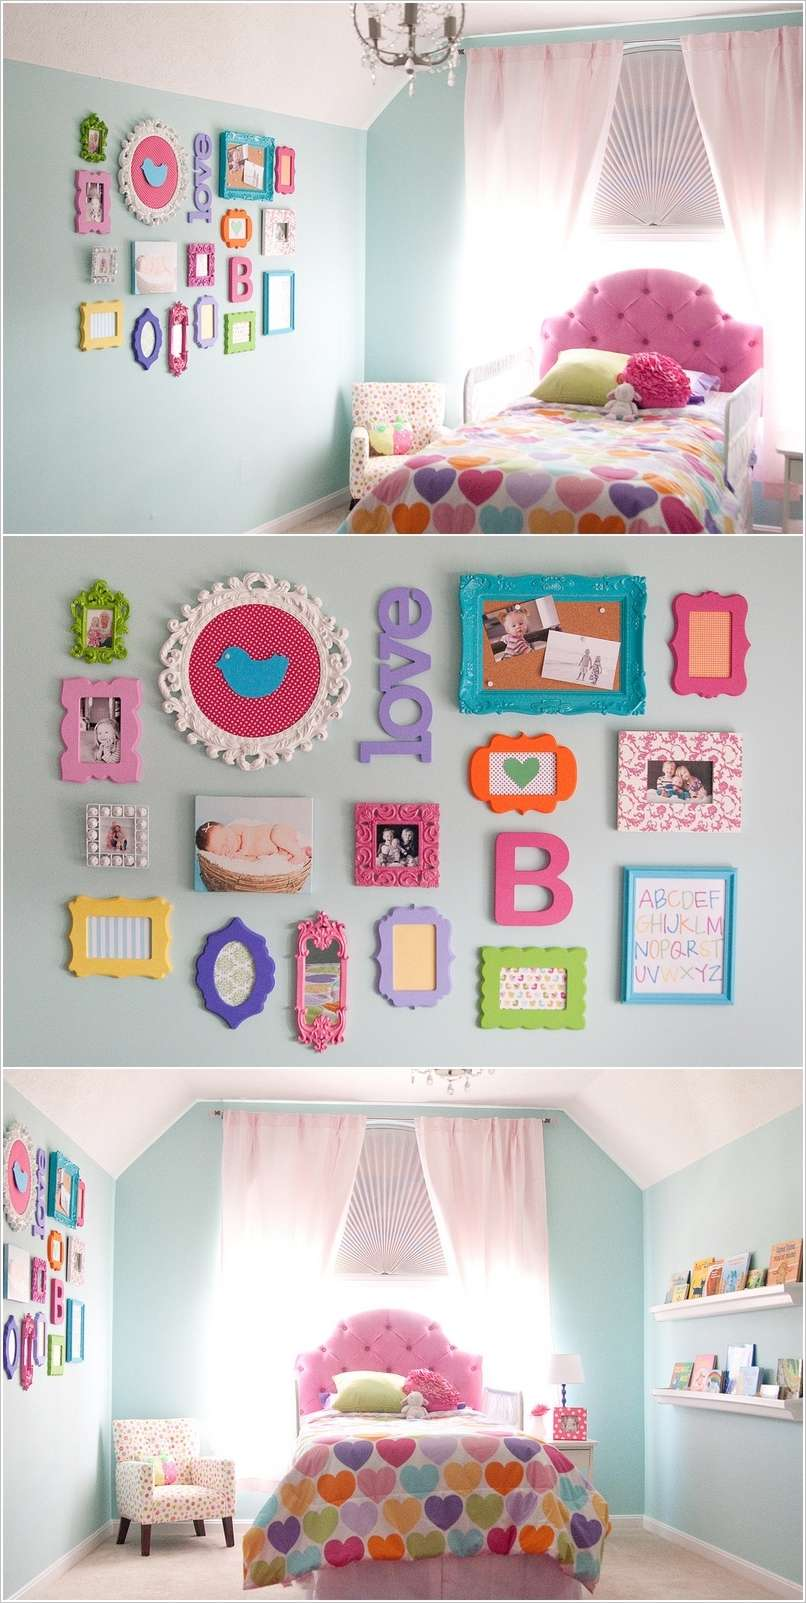 10 cute ideas to decorate a toddler girl 39 s room - Pics of girl room ideas ...